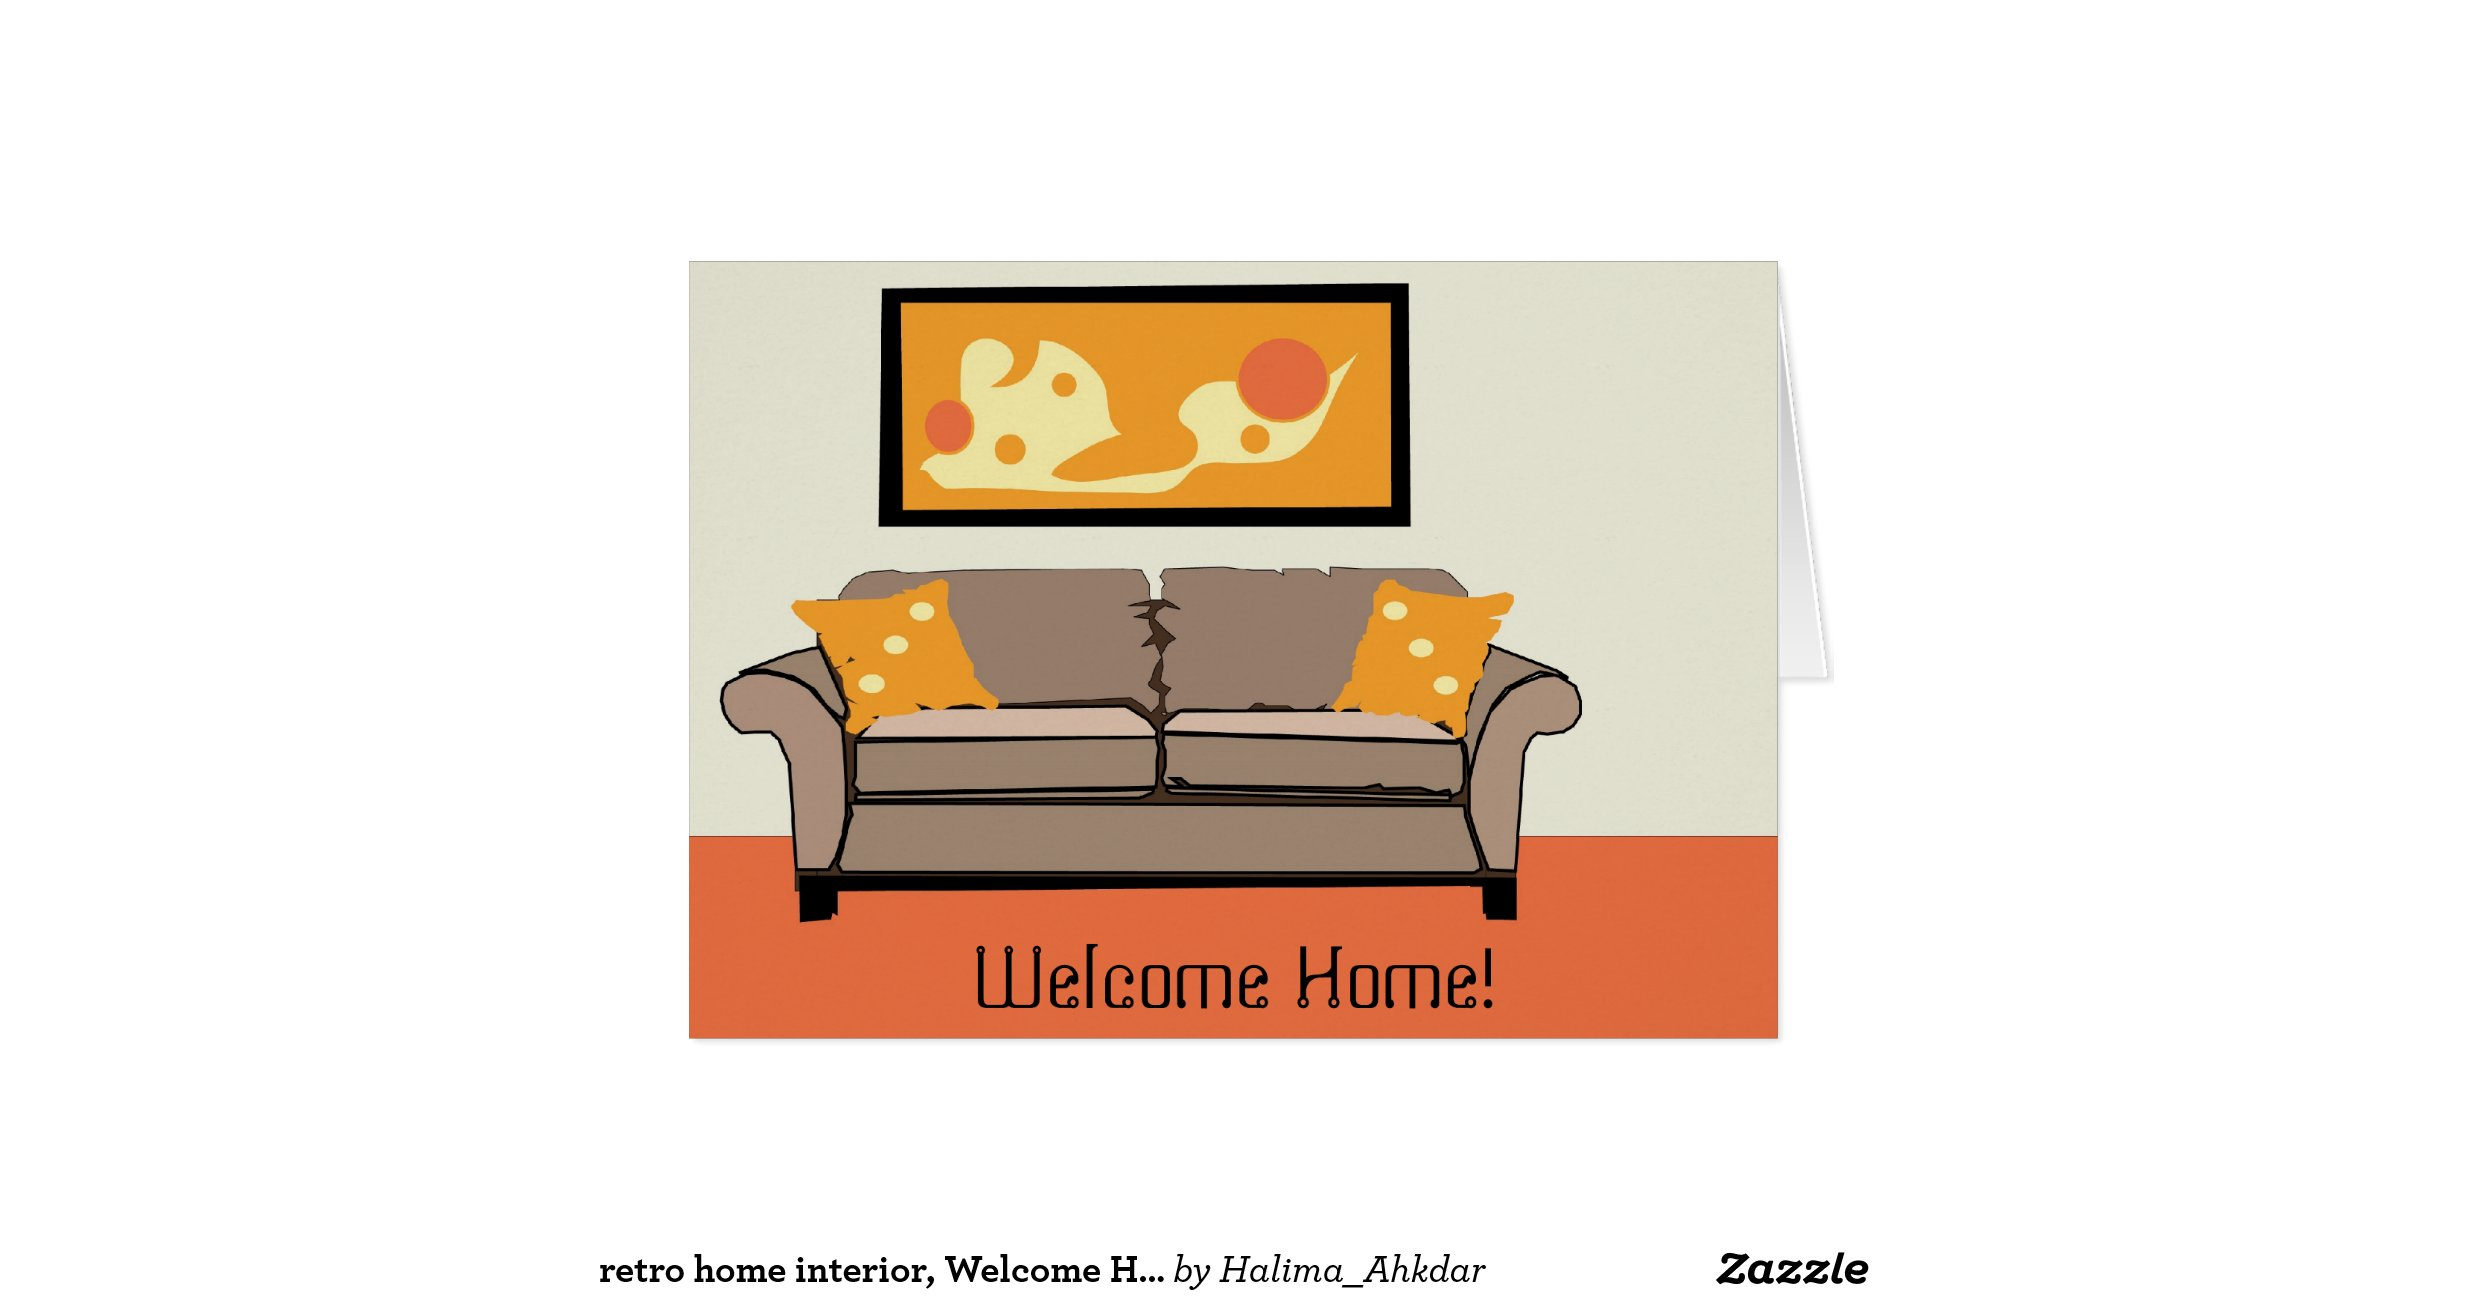 welcome home interiors retro home interior welcome home greeting card zazzle 15414